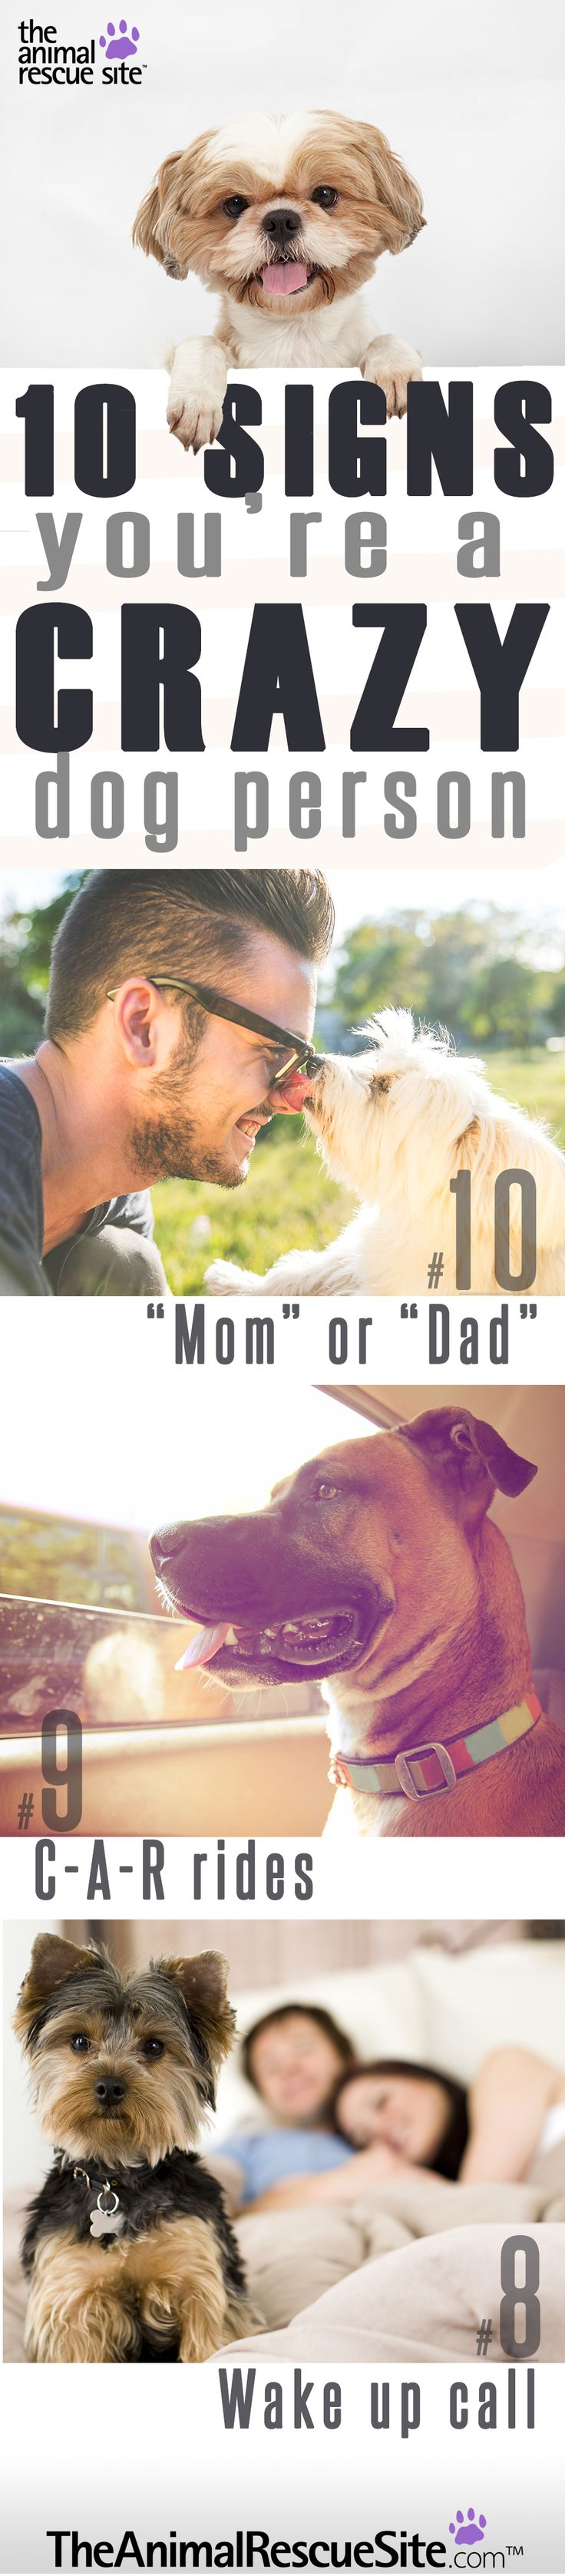 """Here are 10 easy ways to tell if you (proudly) fit the mold of a """"Crazy Dog Person"""" #TheAnimalRecueSite"""